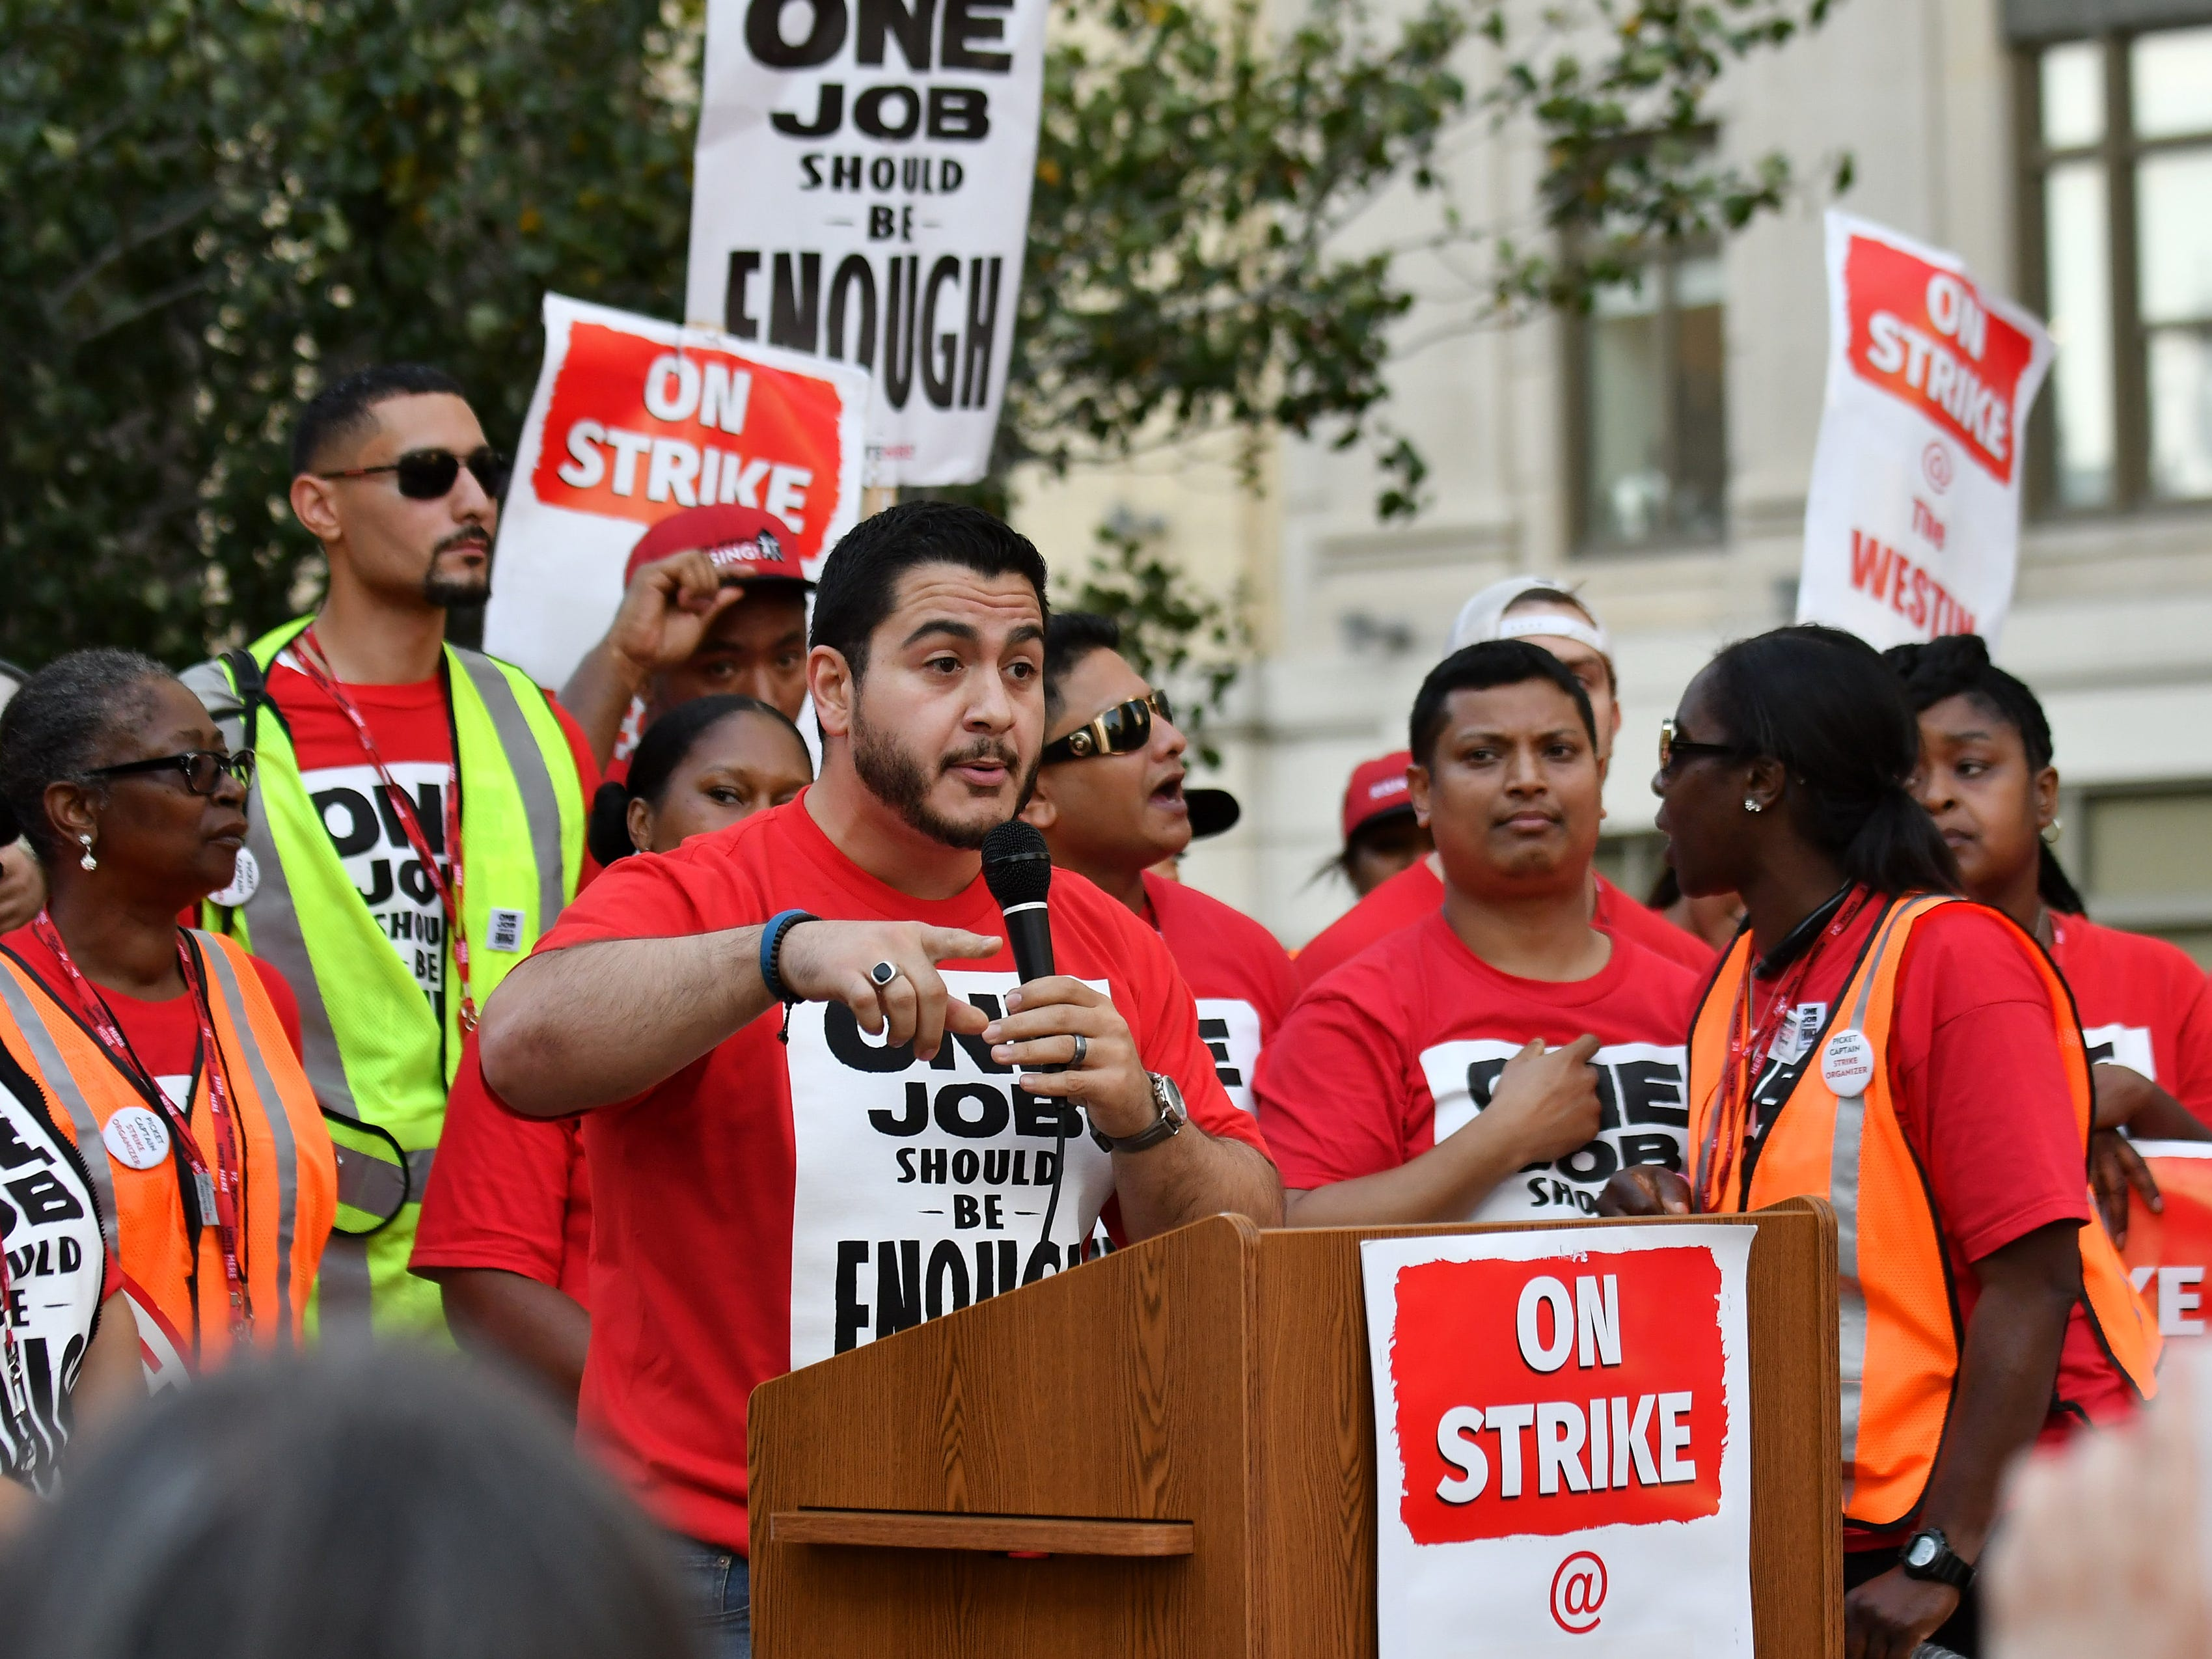 Democratic activist Abdul El-Sayed speaks at a rally for workers from Unite Here Local 24 on strike at the Westin Book Cadillac in Detroit on Oct 9, 2018.